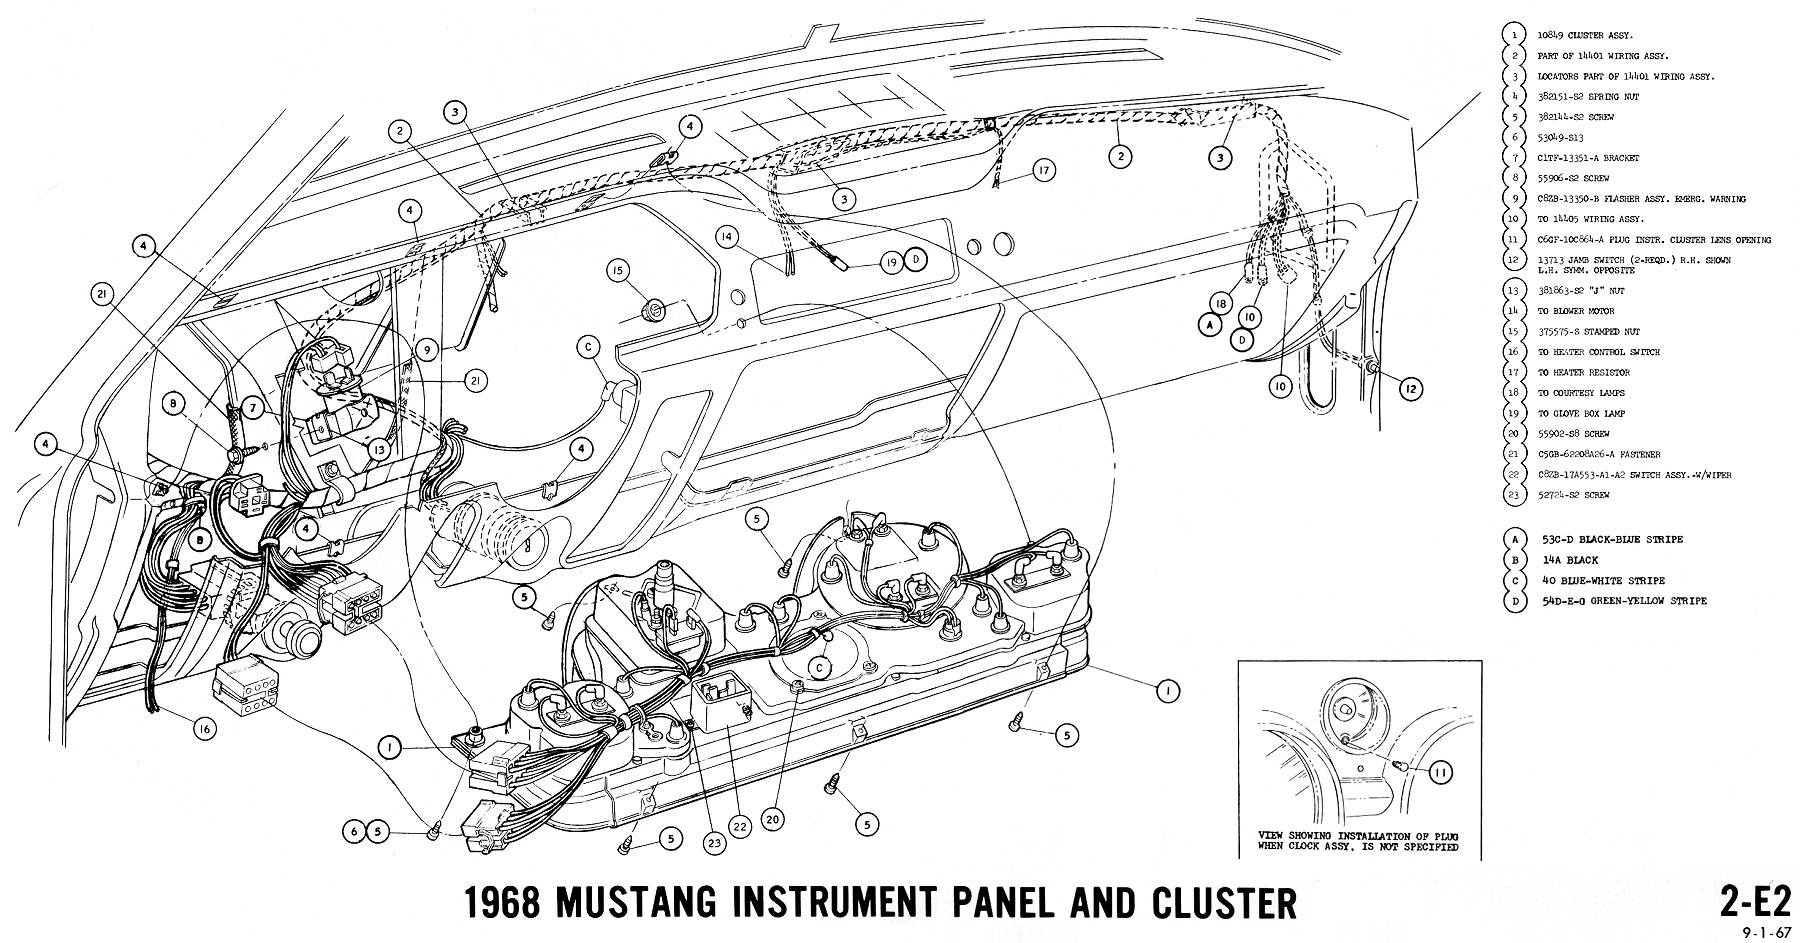 1967 Camaro Steering Column Wiring Diagram likewise 6a0rk Ford Mustang 1972 Mustang Standard Not Tilt Steering as well 2011 11 01 archive likewise 1969 Firebird 400 identification likewise 55 Chevrolet Wiring Diagram. on 1969 chevelle horn wiring diagram